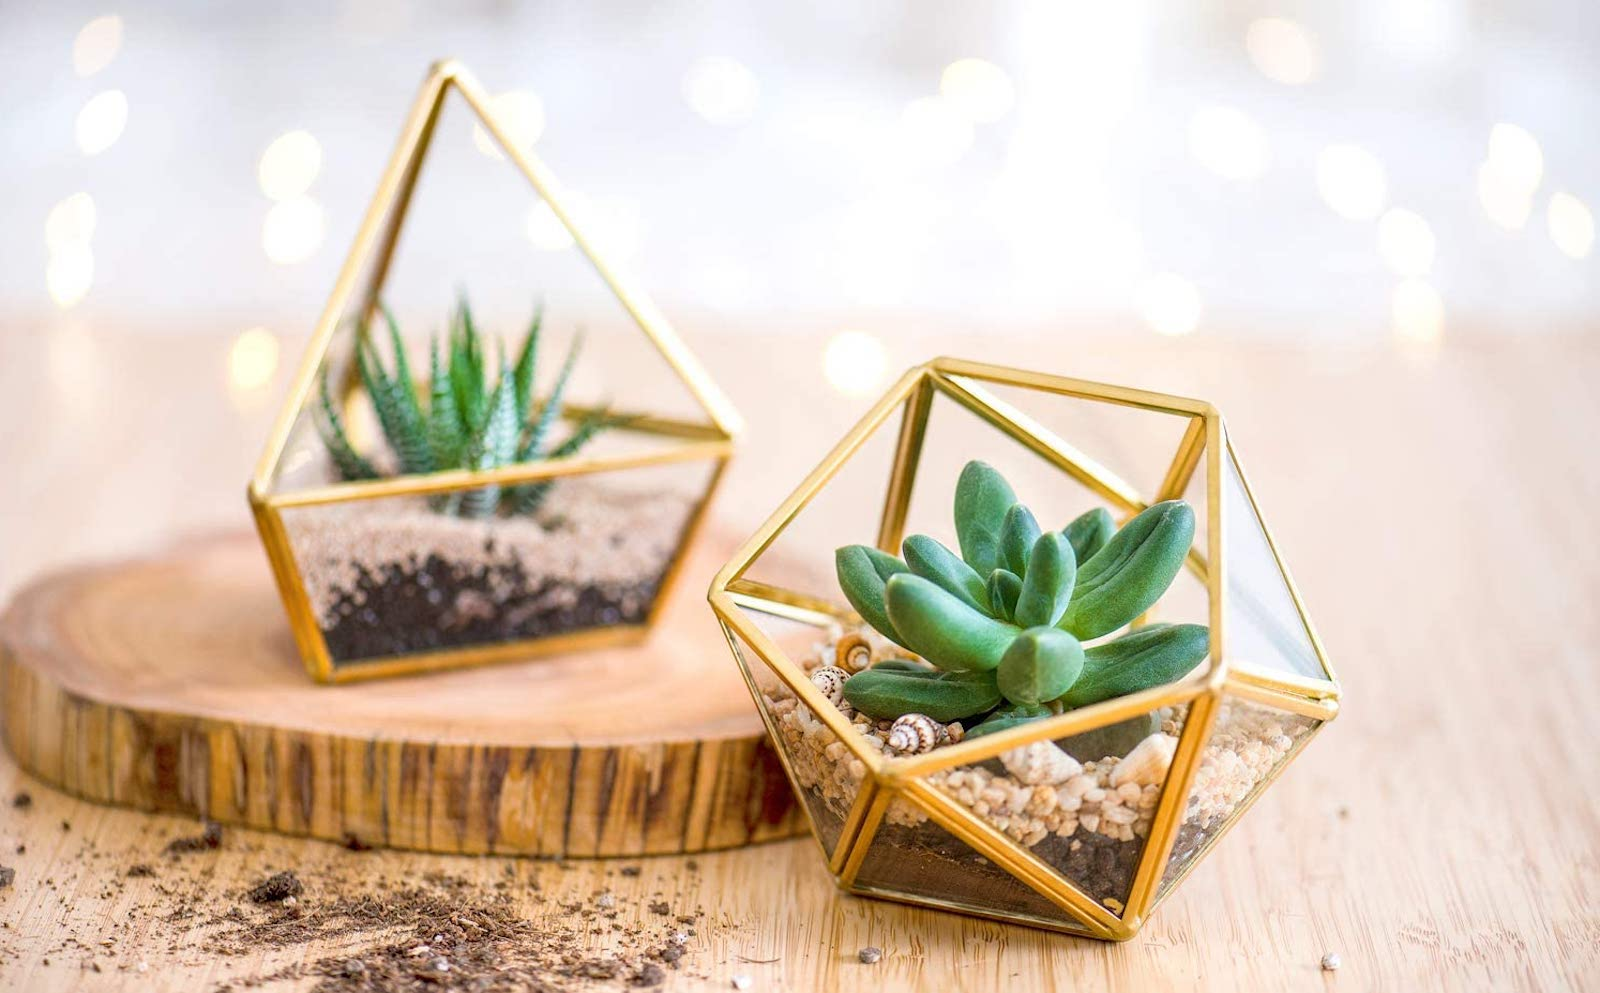 Two gold-and-glass geometric mini terrariums, with succulents inside, on a wooden surface